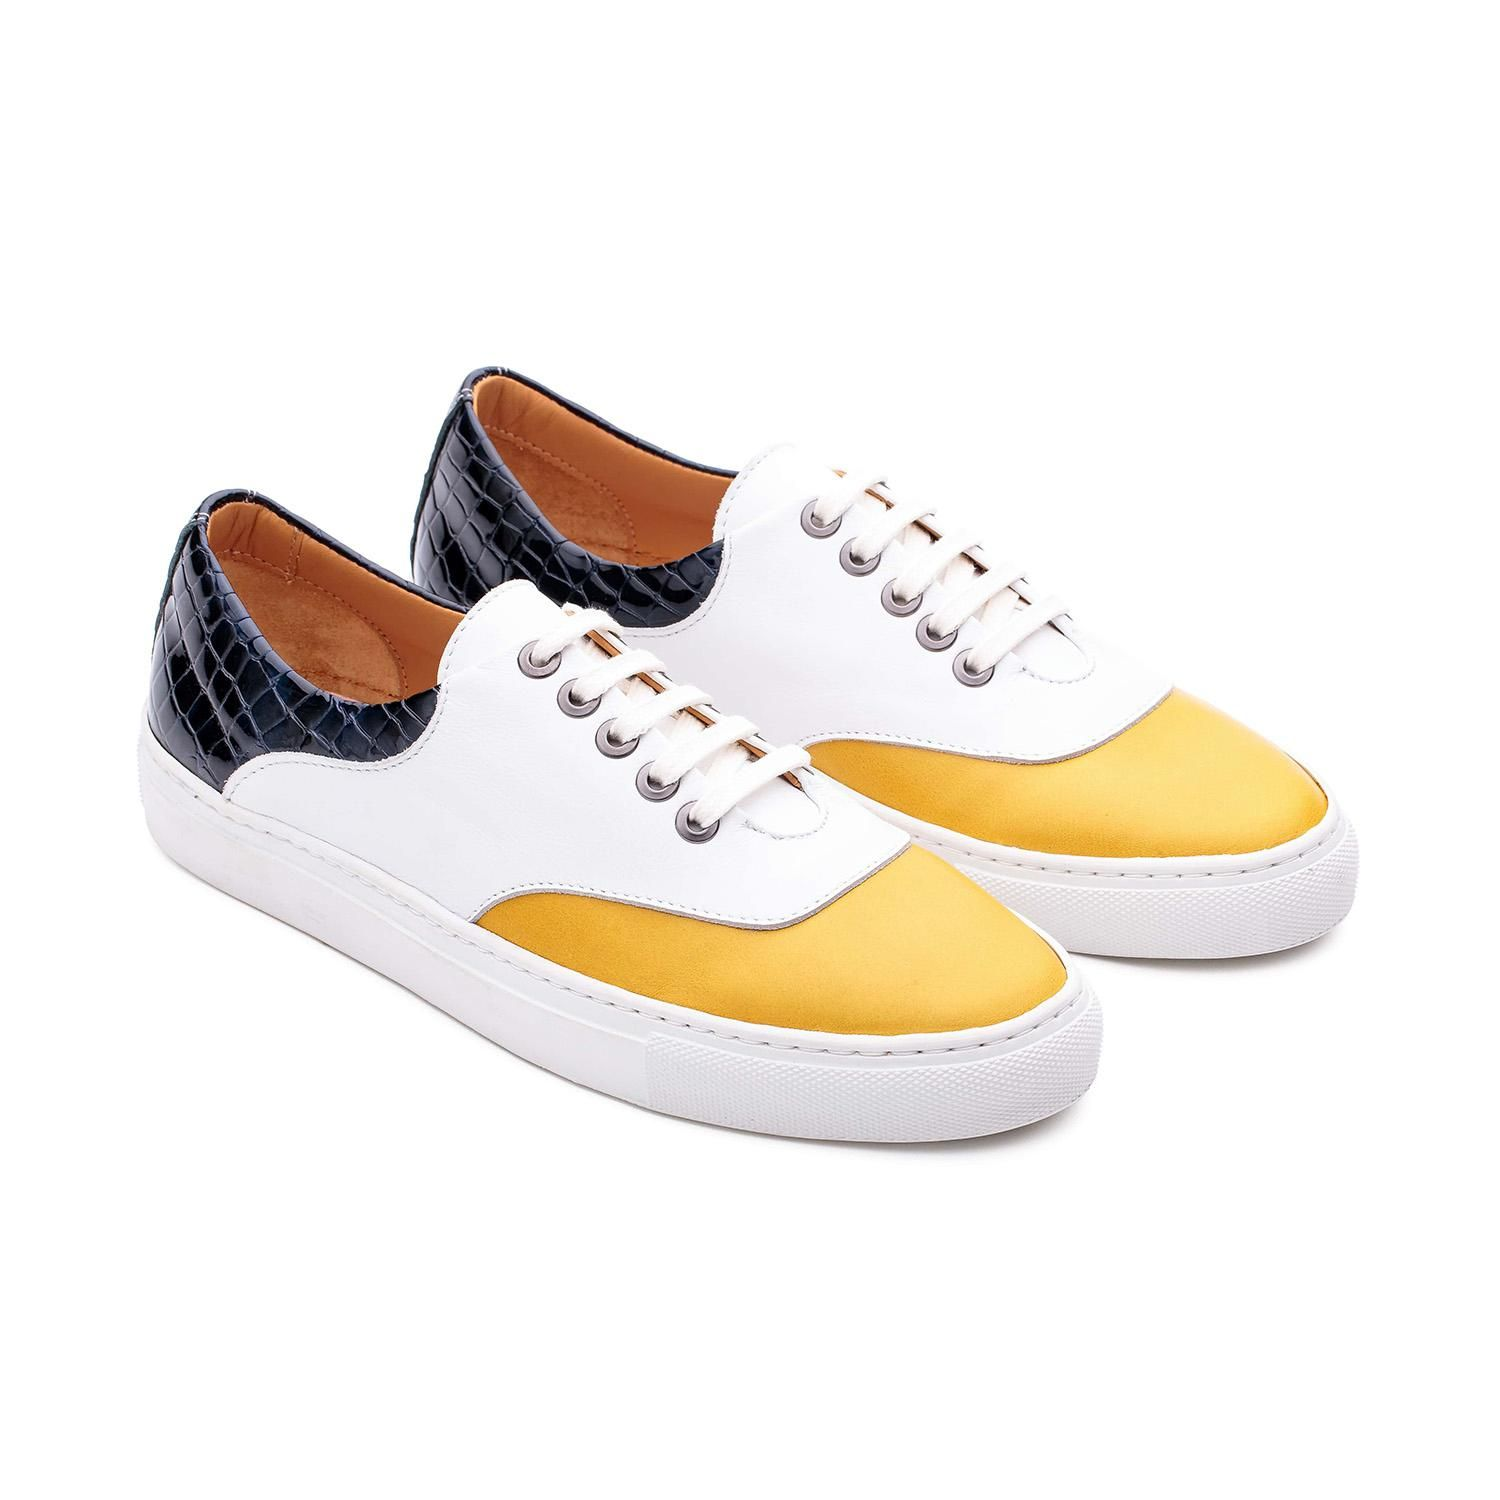 Sapatos Saddle Sneakers Makemake.